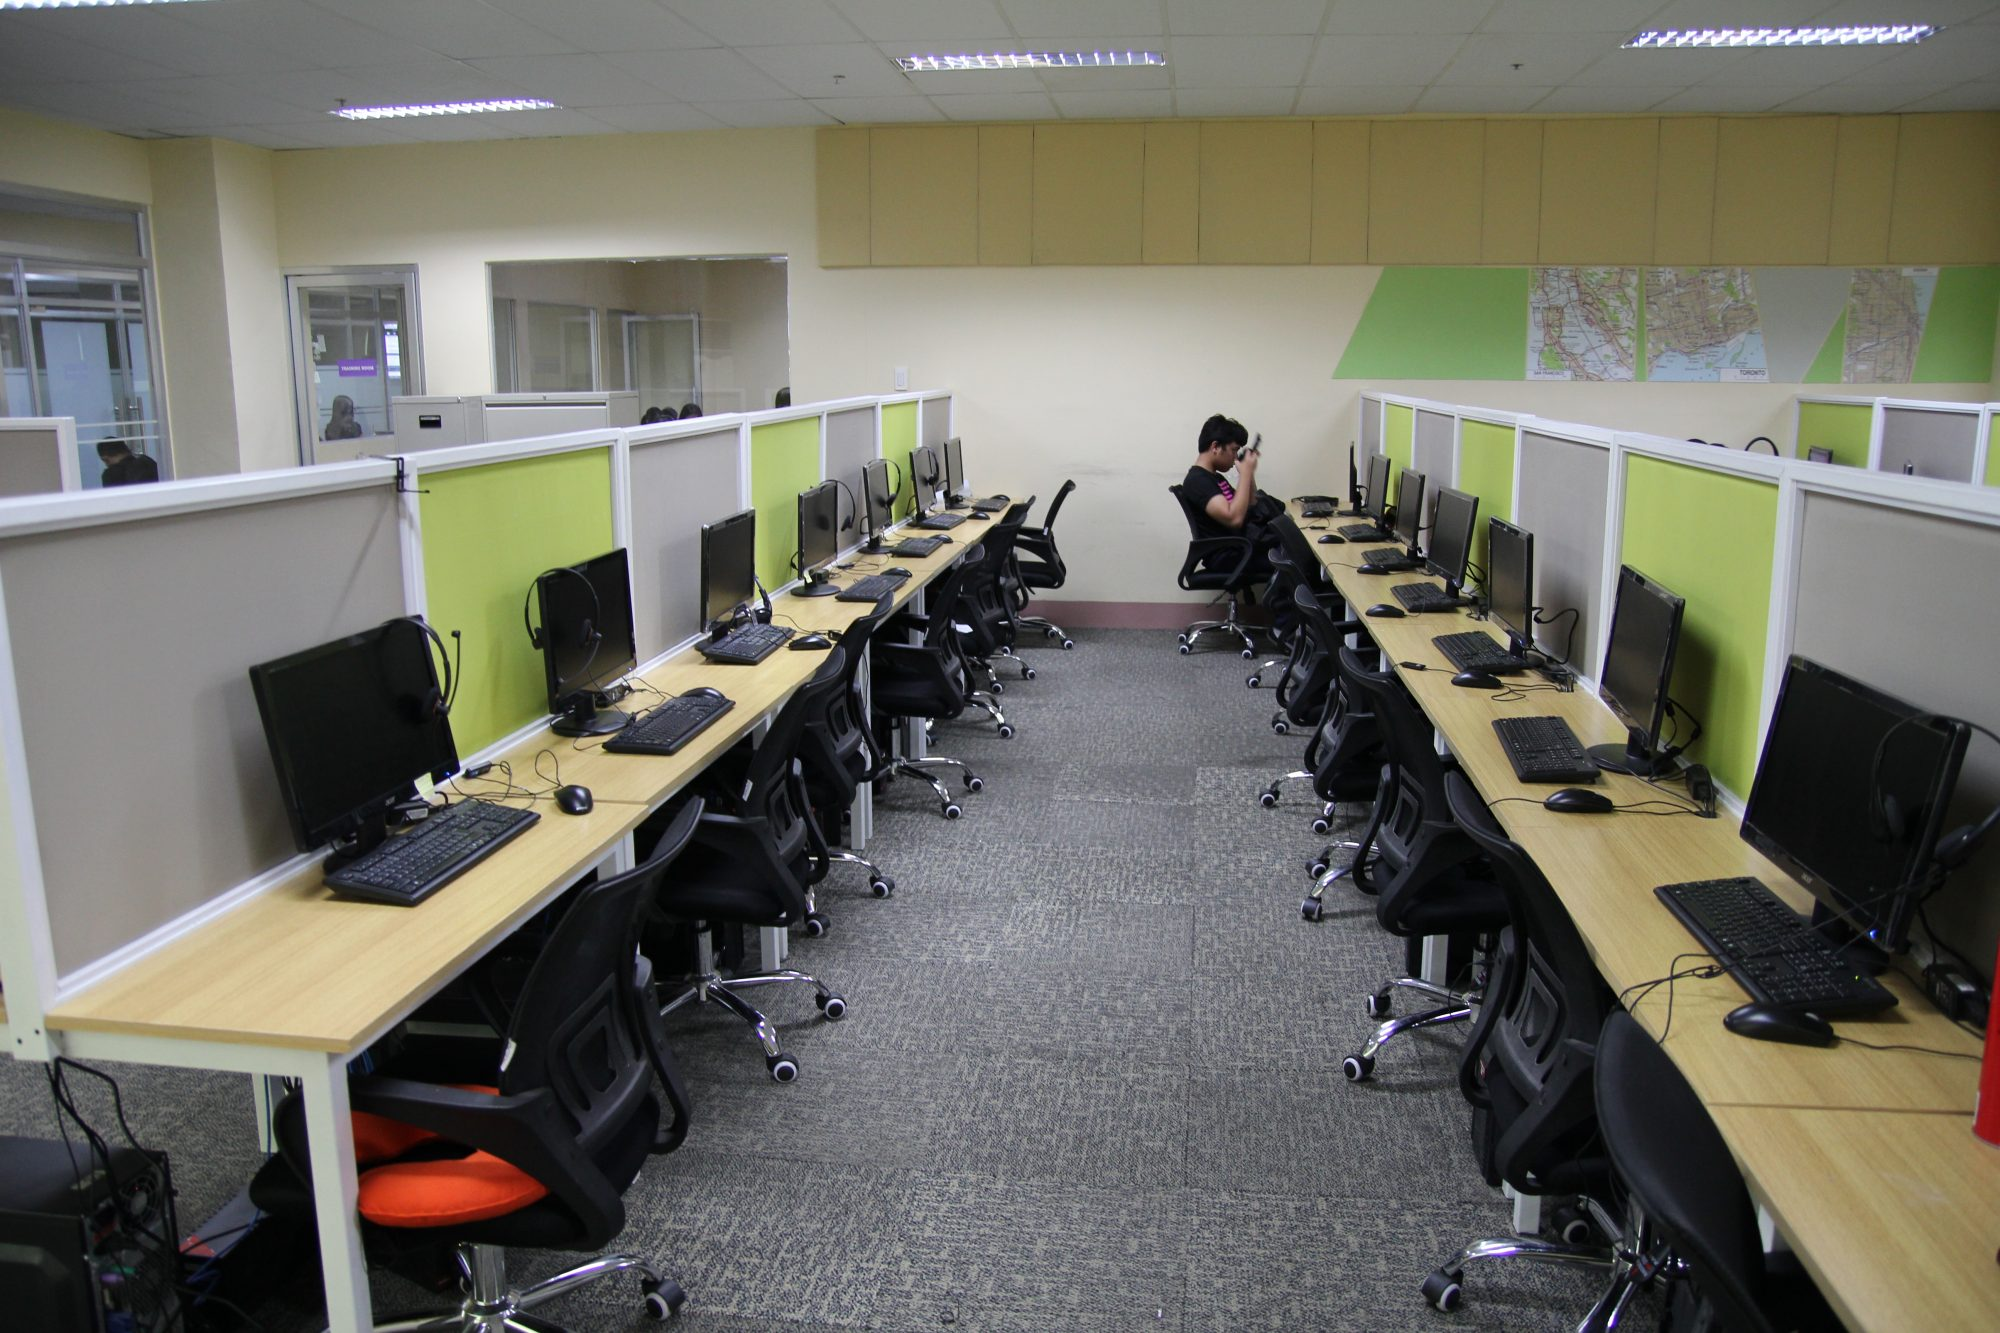 The Seat Leasing and Call Center Offices of BPOSeats.com